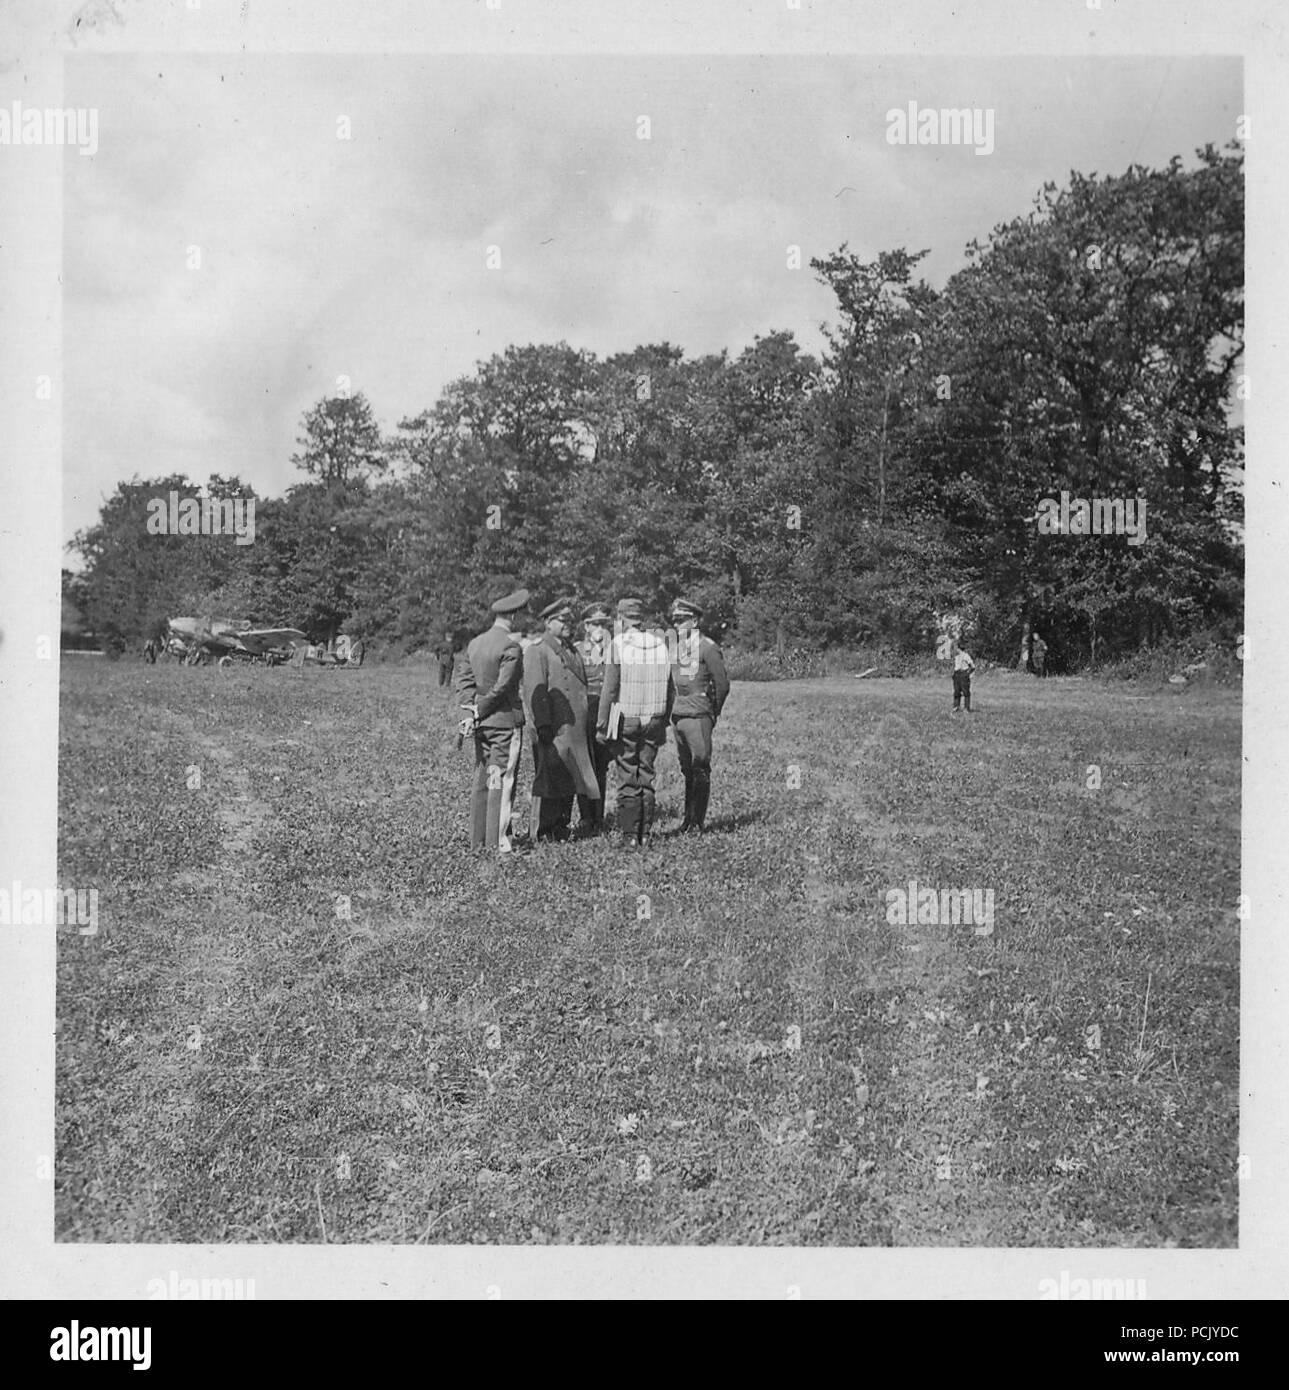 Image from a photo album relating to II. Gruppe, Jagdgeschwader 3: Feldmarschall Albert Kesselring in discussion with Hauptmann Erich von Selle and other officers of II./JG3 at Wierre-au-Bois airfield in France, summer 1940. In the background is one of the units Messerschmitt Bf 110 heavy fighters. - Stock Image